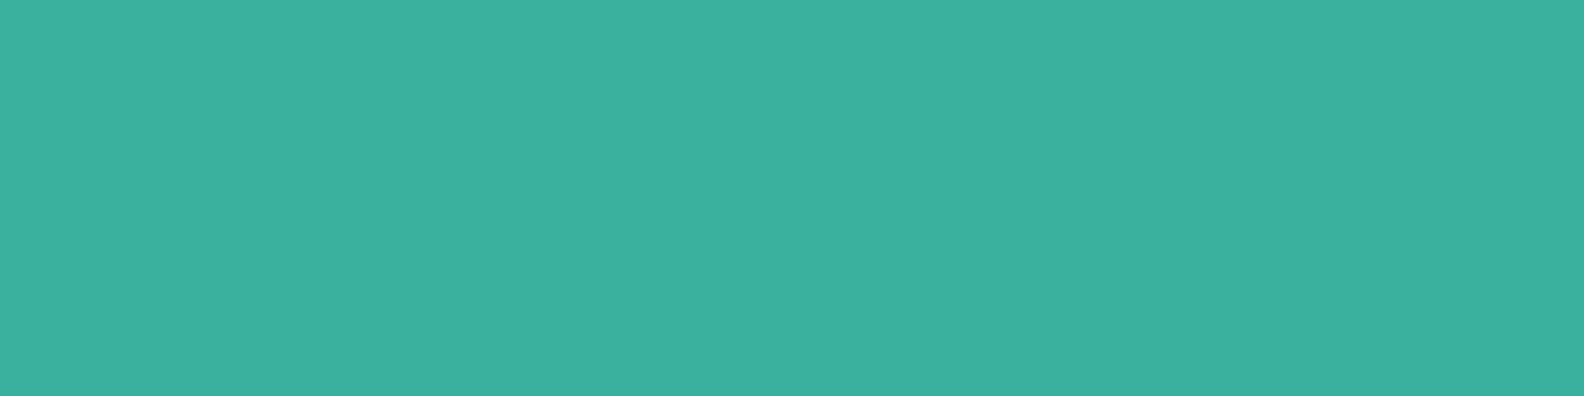 1584x396 Keppel Solid Color Background